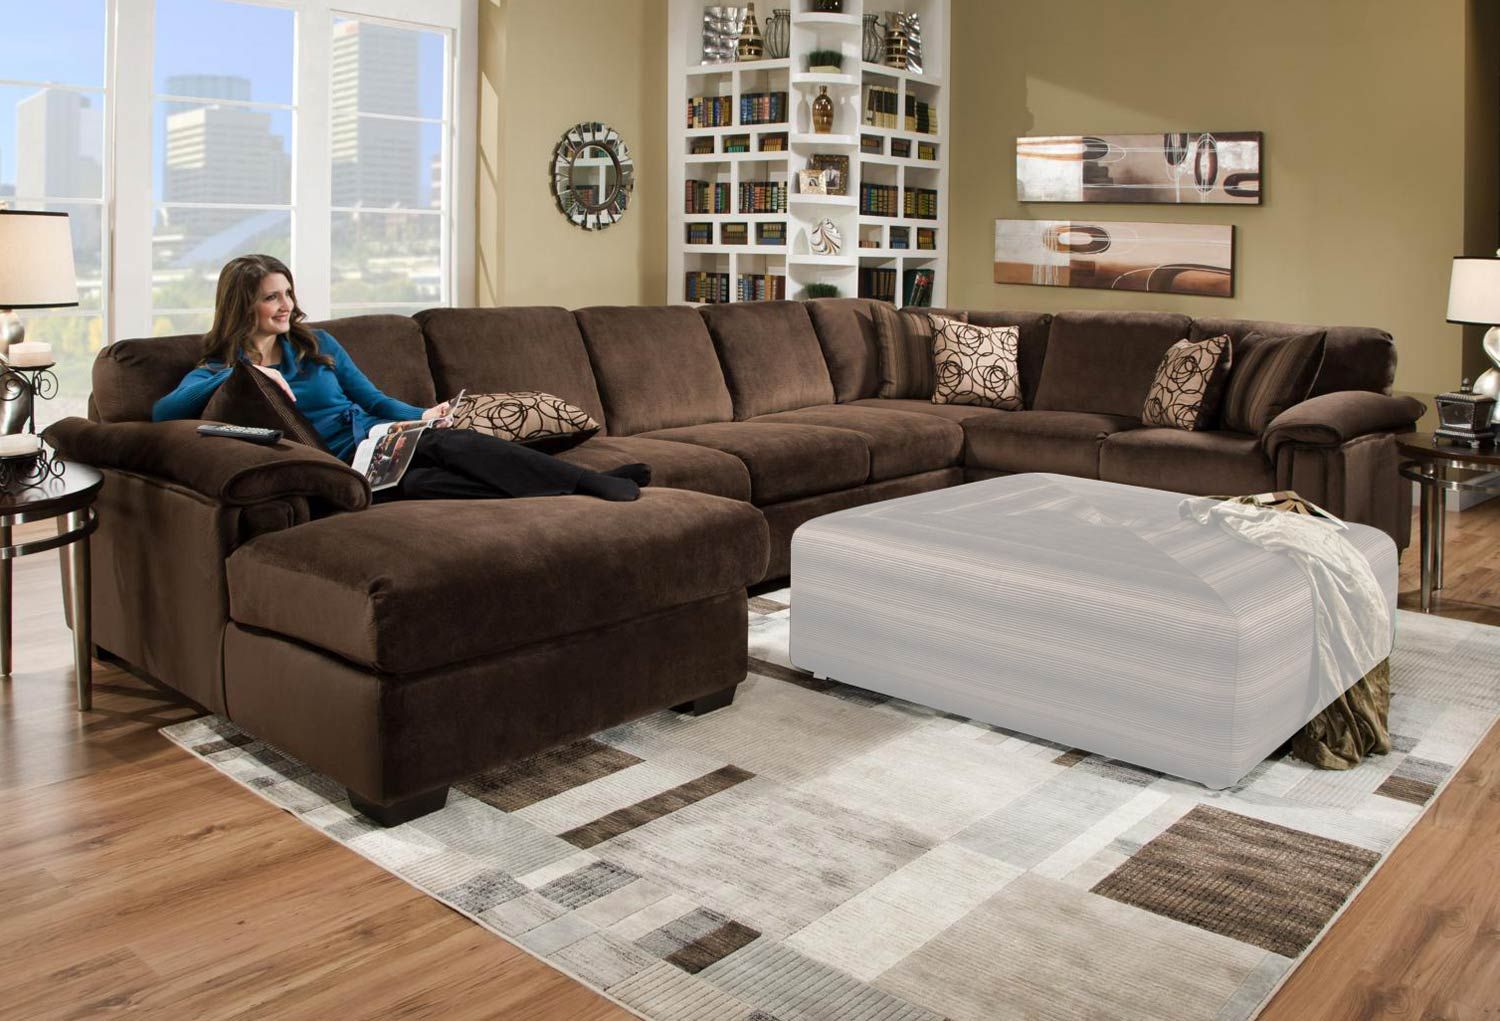 Dahlia 3 Seat Leather Sofa Chelsea Home Dahlia 3 Piece Sectional Sofa With Sleeper Rhino Beluga